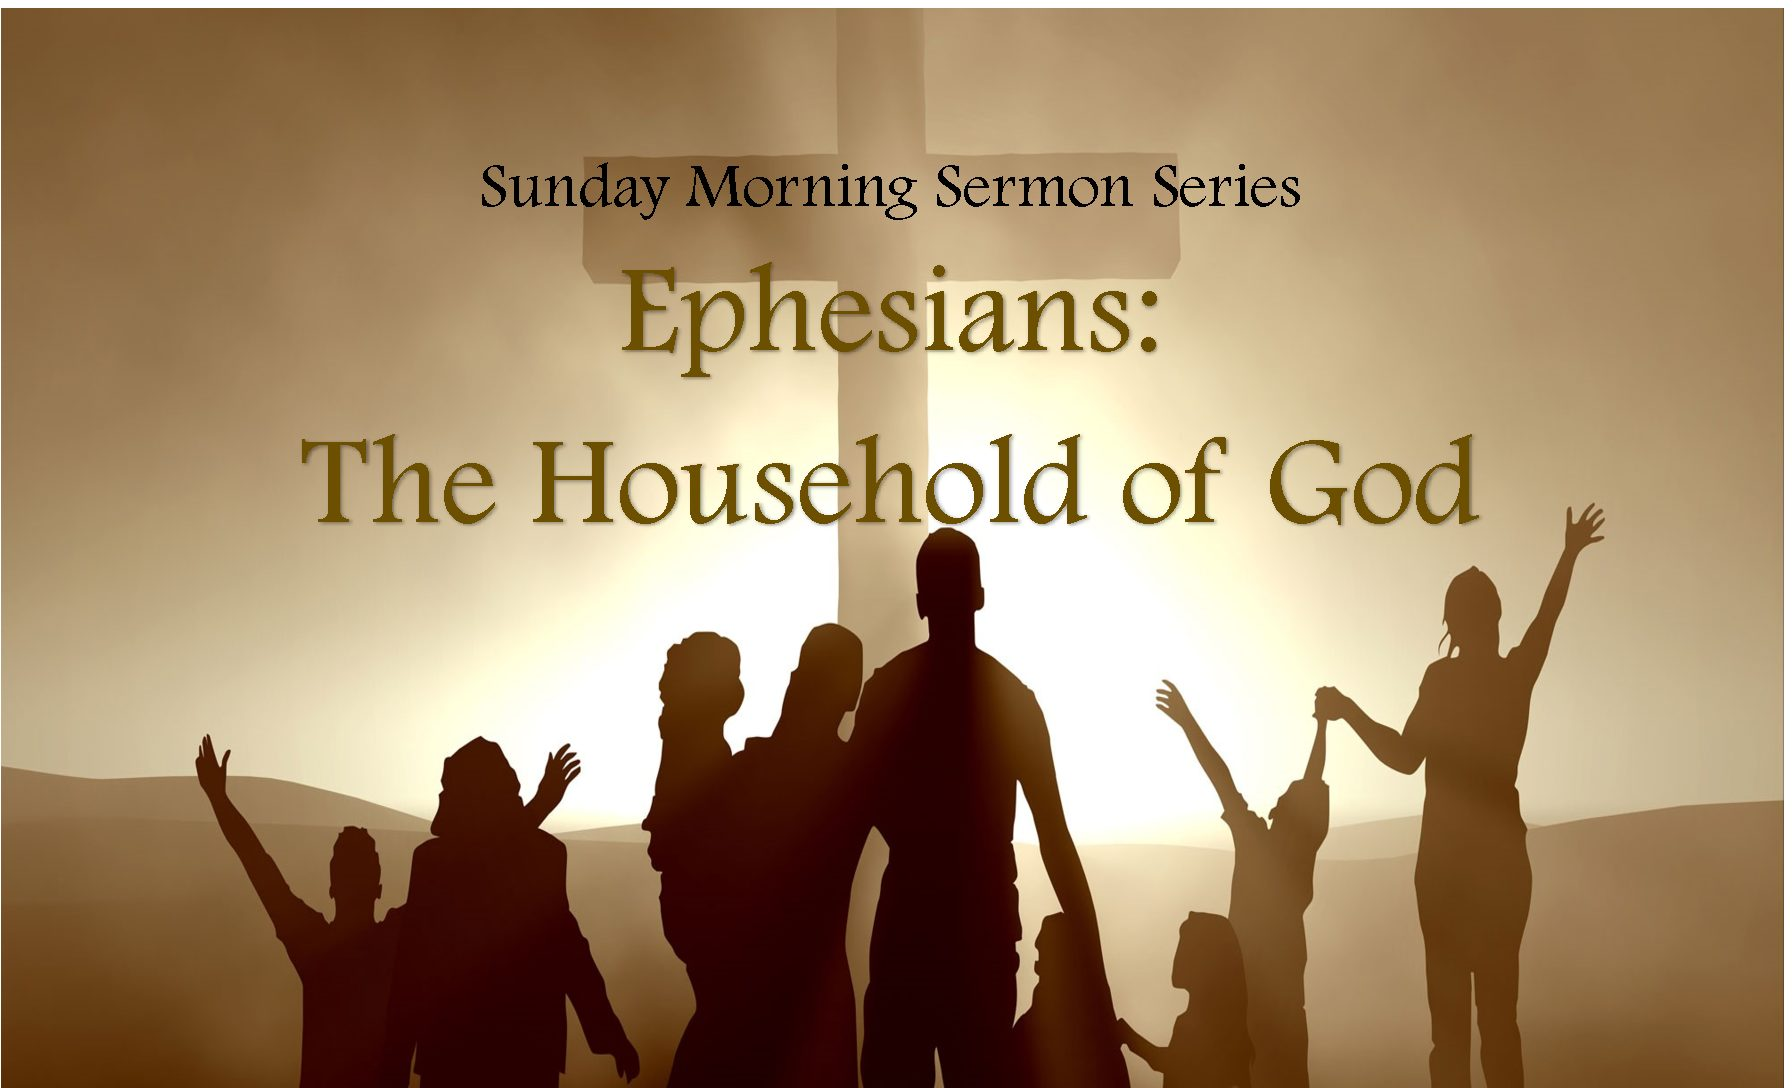 The Household of God: Knowing God's Love